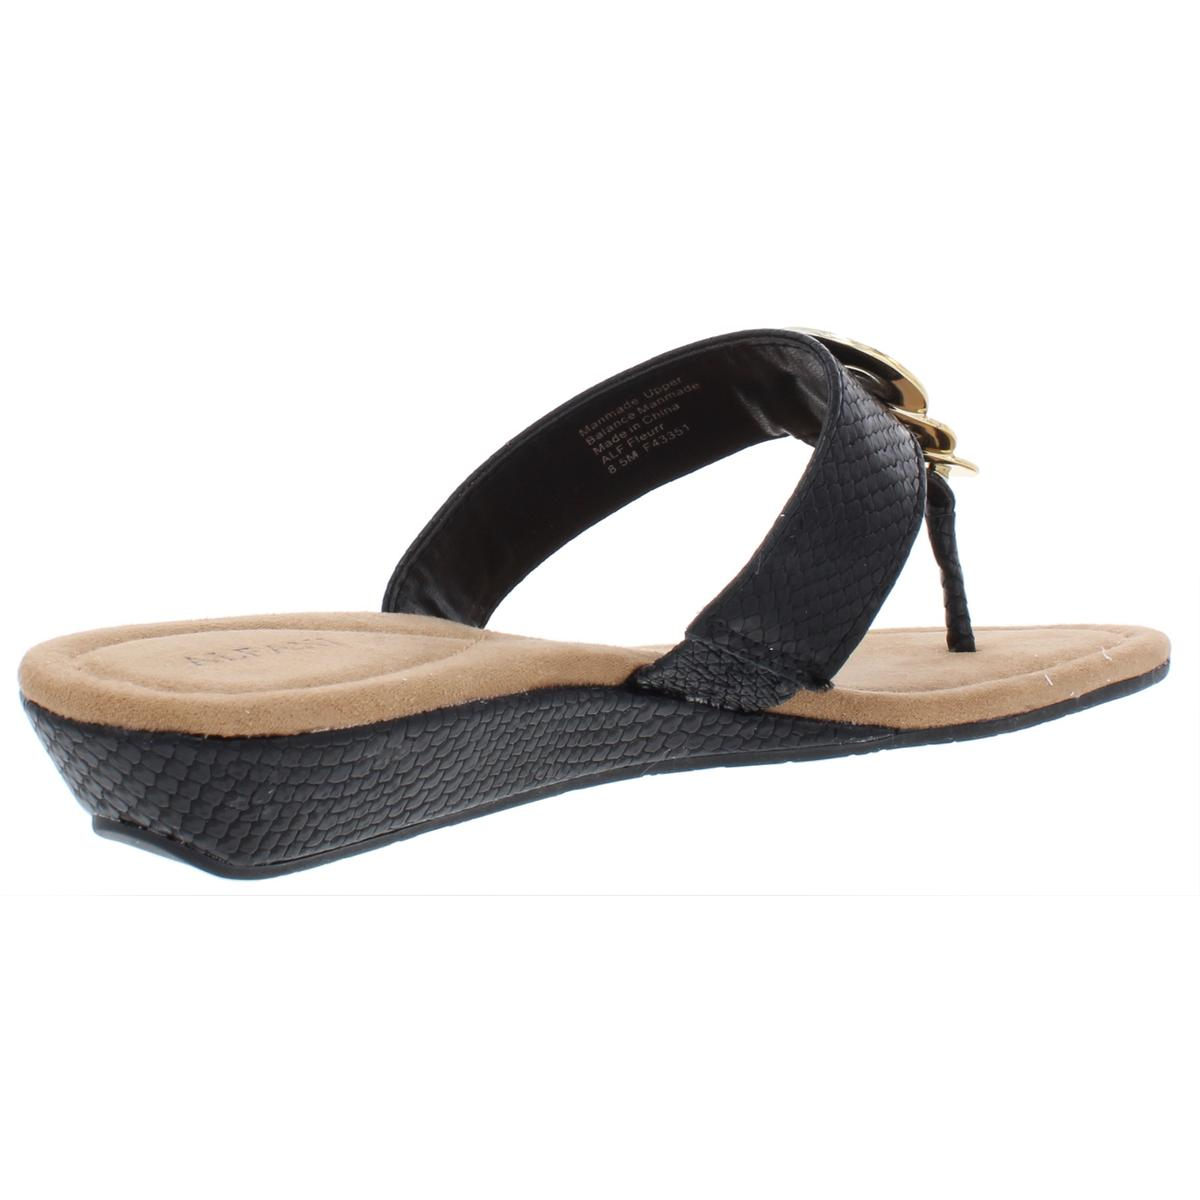 Alfani-Womens-Fleurr-Faux-Leather-Padded-Insole-Wedge-Sandals-Shoes-BHFO-6592 thumbnail 4